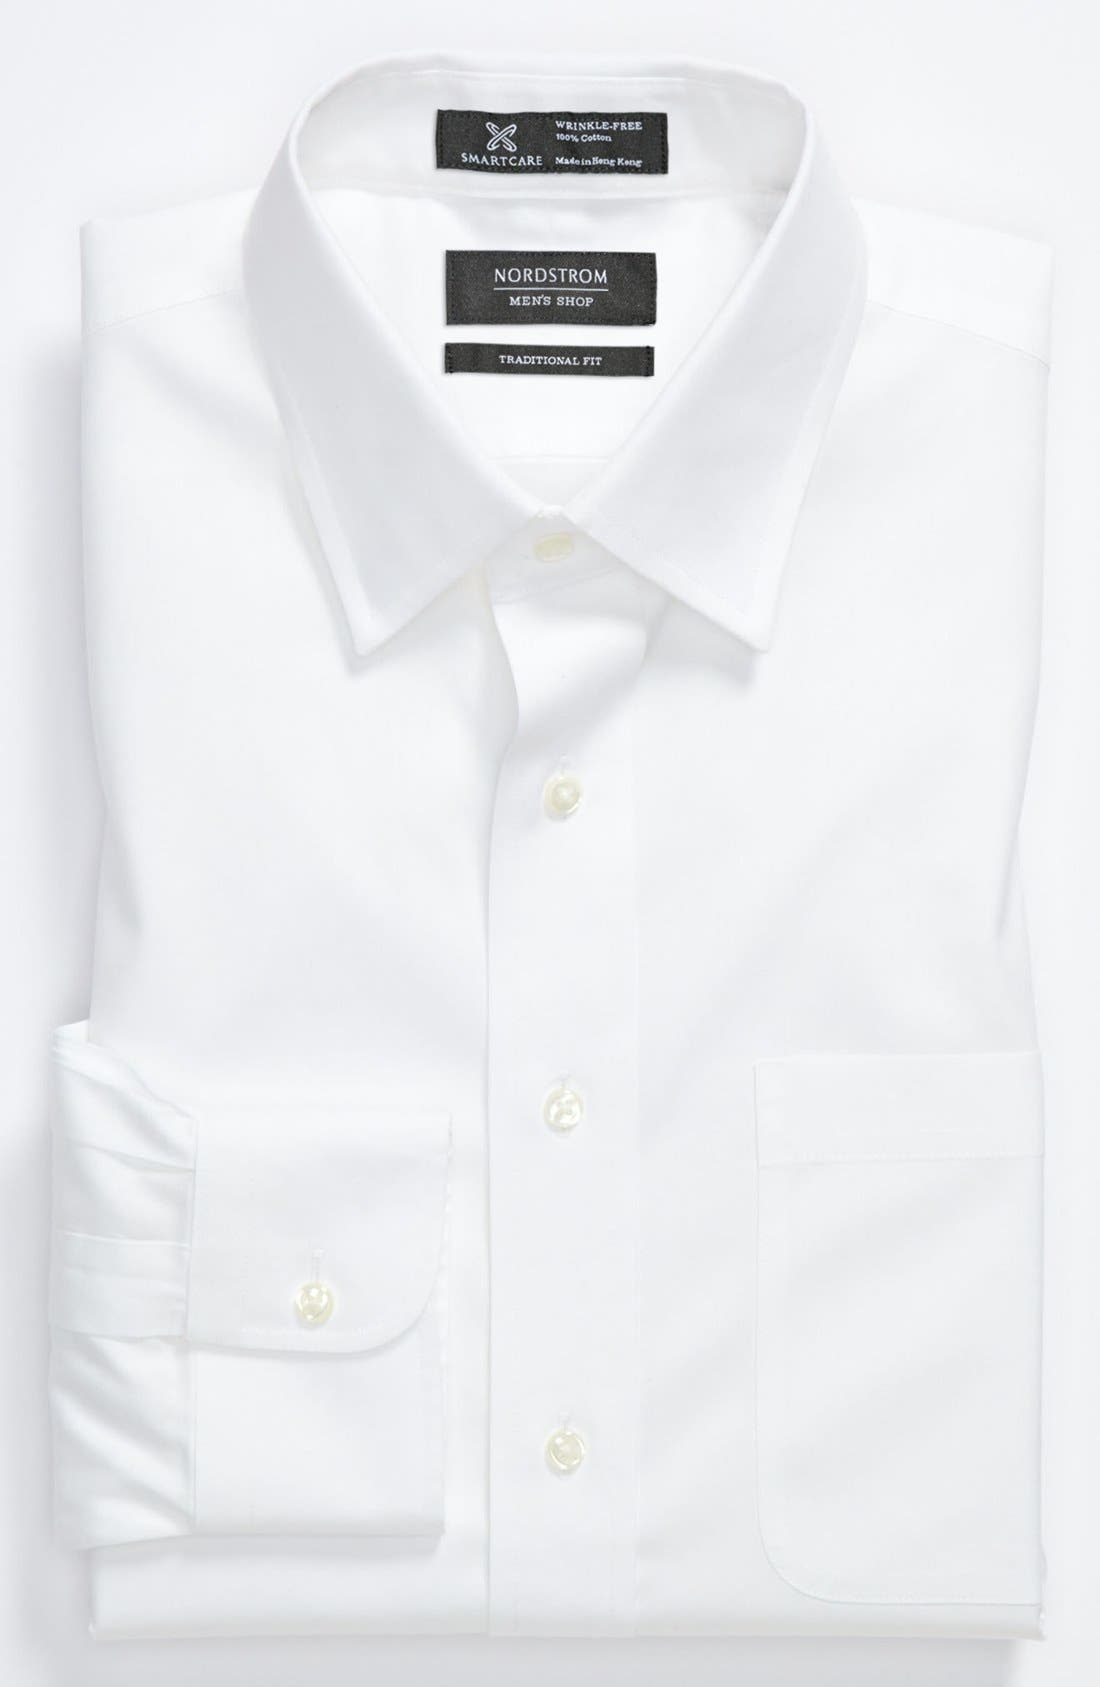 Main Image - Nordstrom Men's Shop Smartcare™ Traditional Fit Dress Shirt